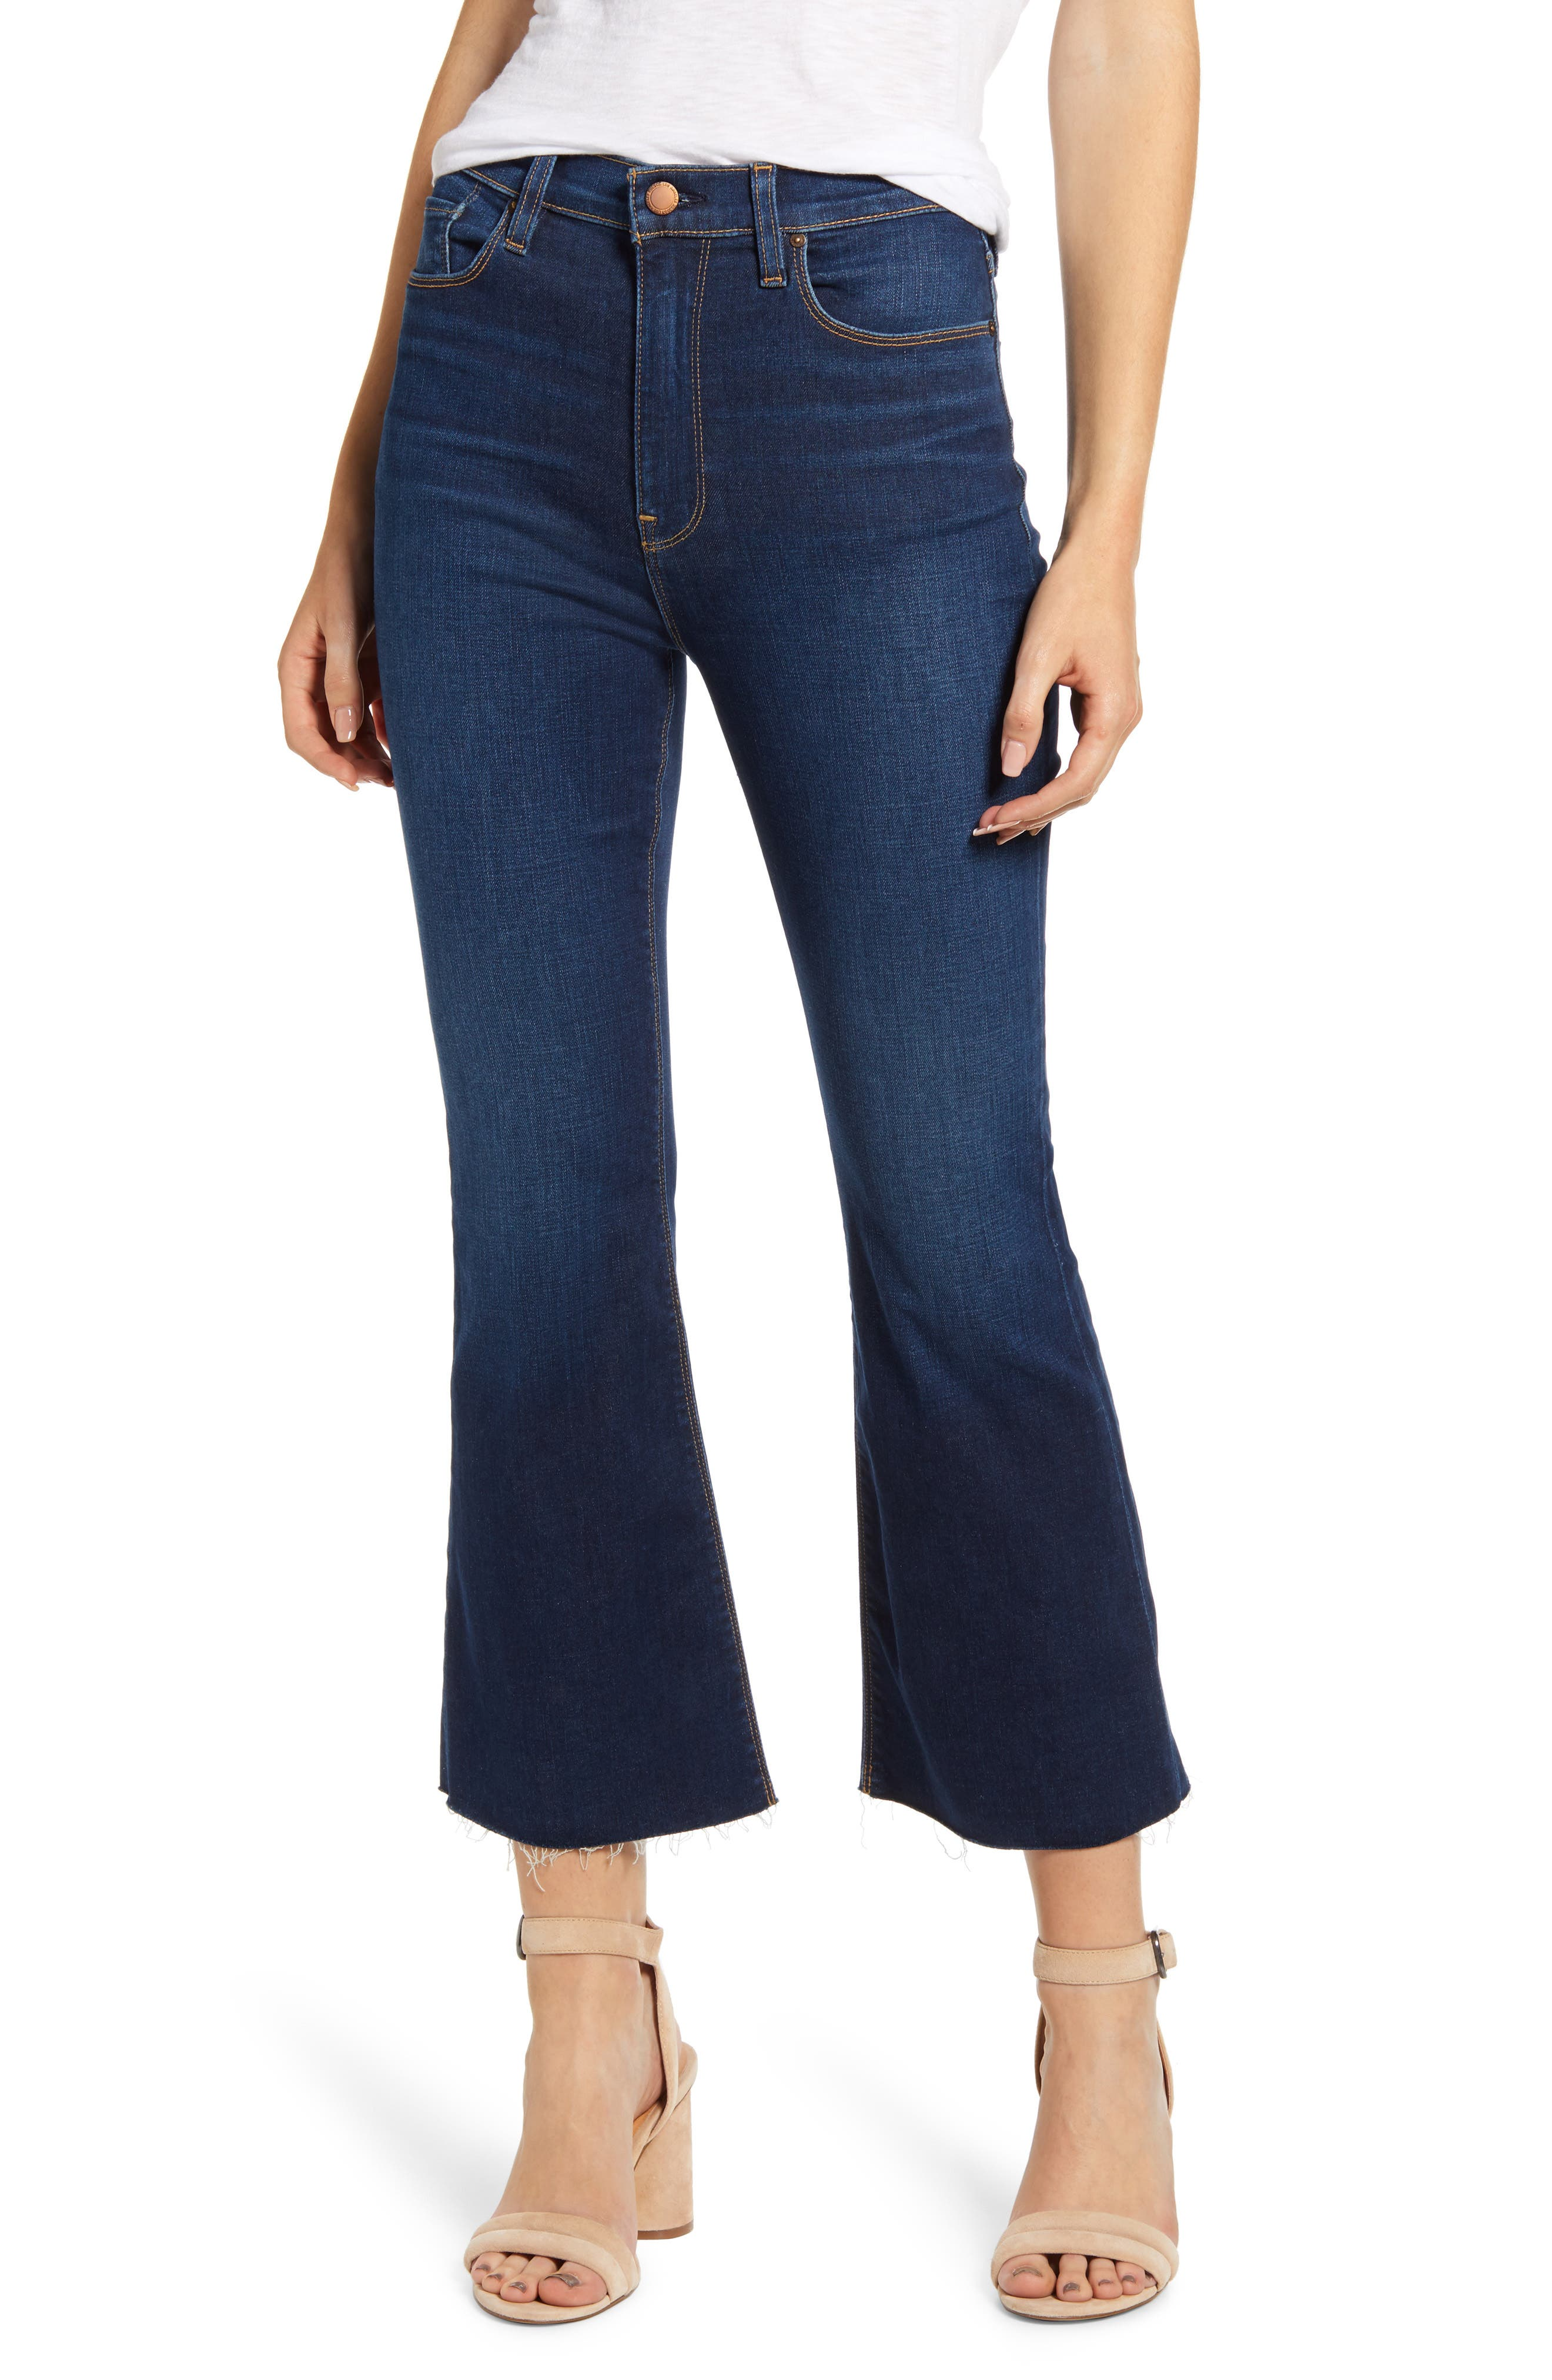 Figure-elongating flared jeans come in a soft and stretchy indigo denim that\\\'s been sanded just right for \\\'70s vibes. Style Name: Hudson Jeans Holly Barefoot Flare Jeans (Skeptical). Style Number: 5870894. Available in stores.